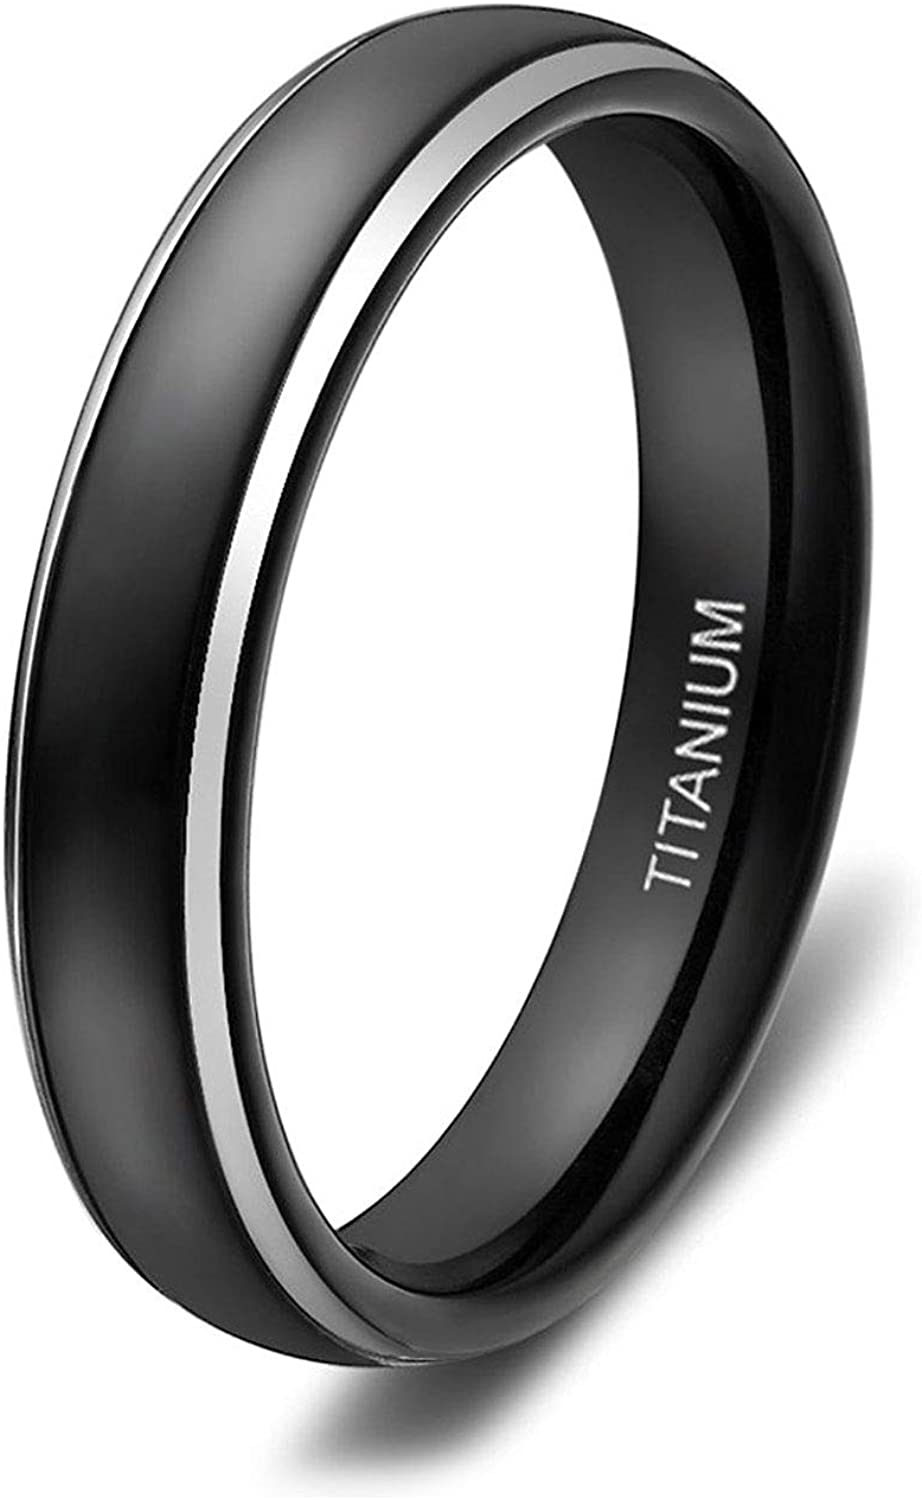 SOMEN TUNGSTEN 4mm 6mm 8mm Titanium Rings for Men Women Black Dome Two Tone Glossy High Polish Wedding Band Size 4-13.5